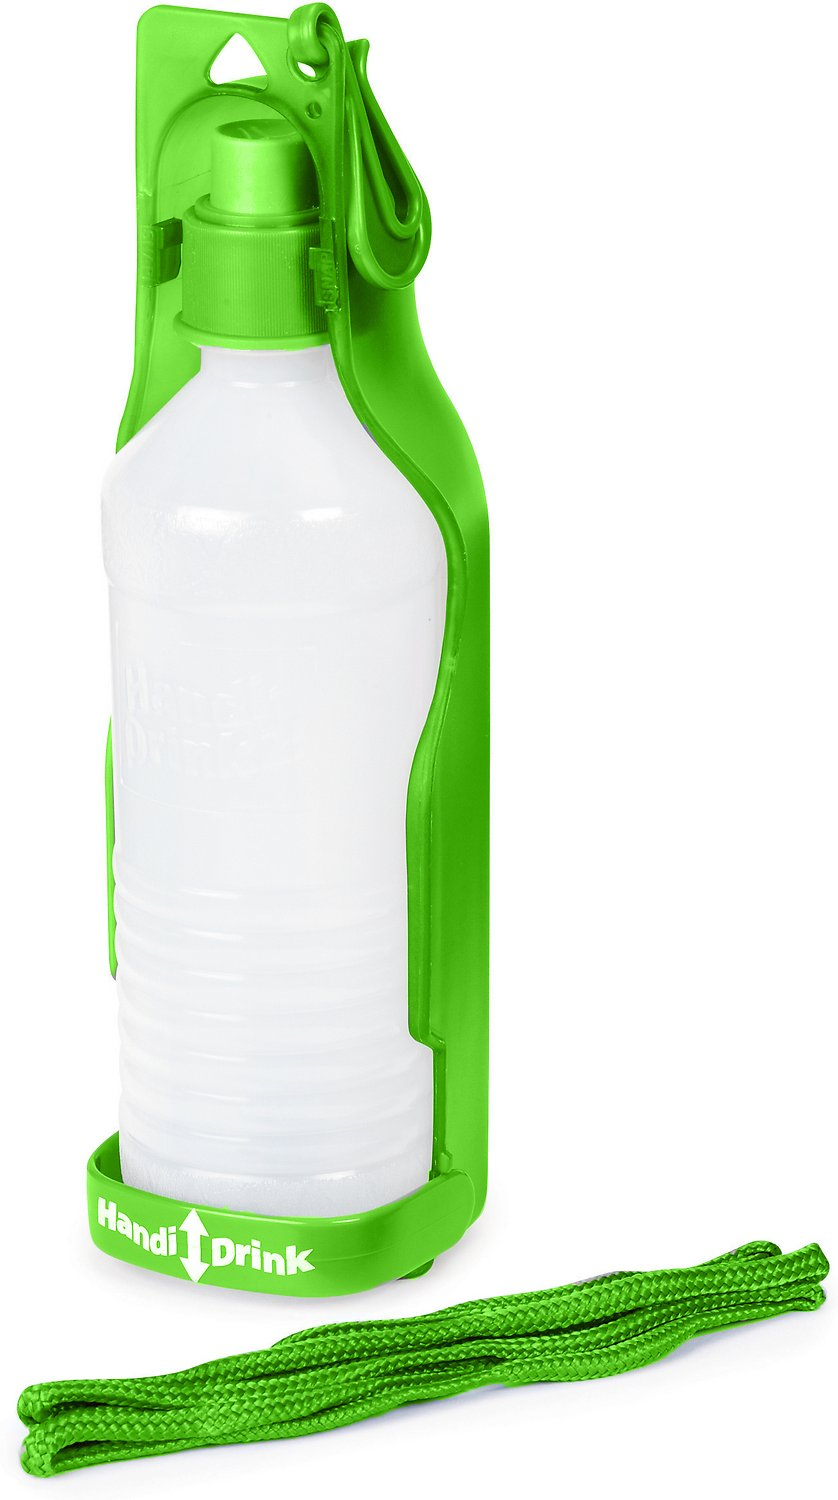 Guardian Gear Handi Drink Portable Dog Water Bottle Light